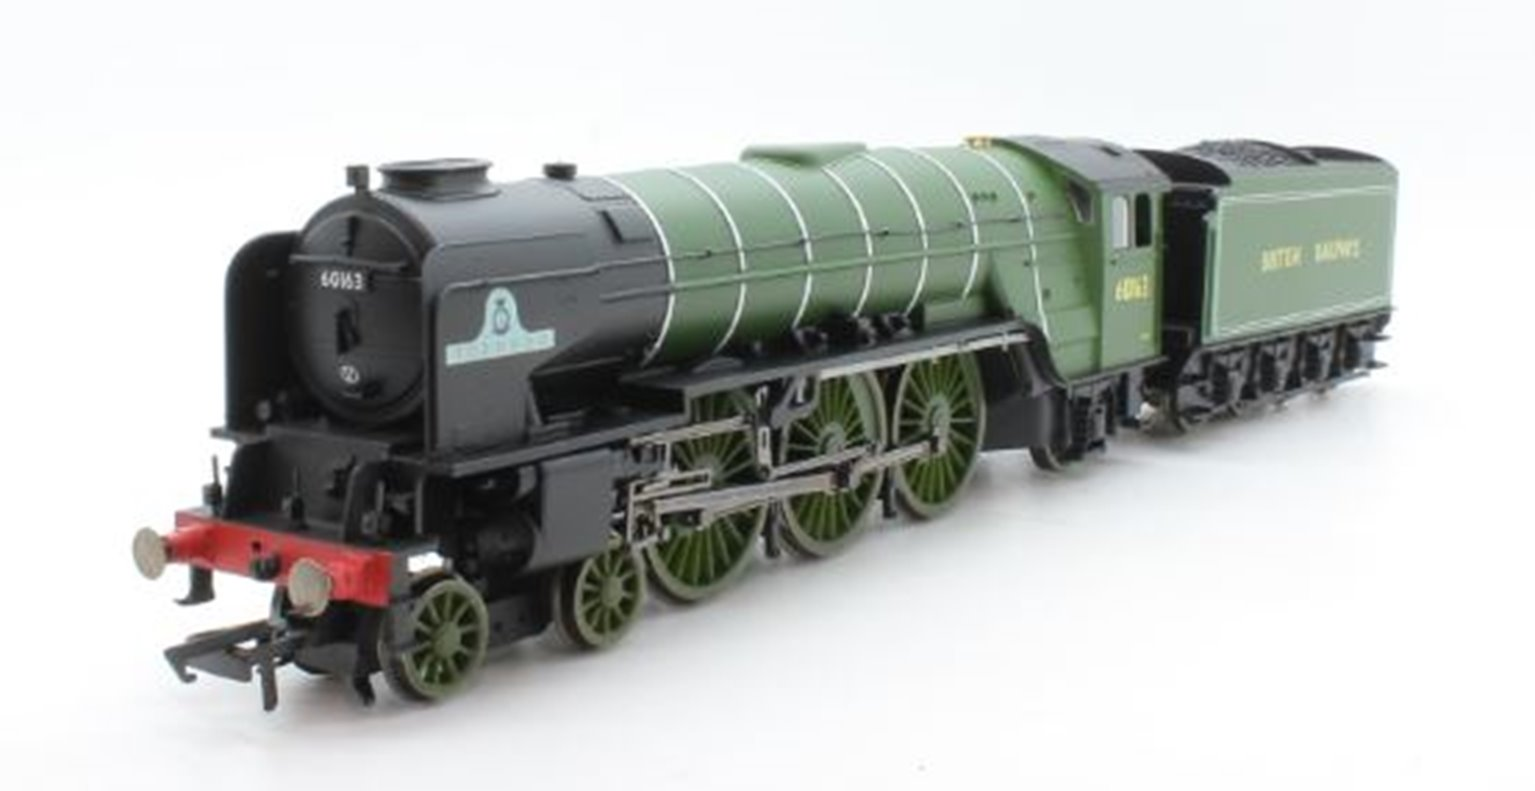 BR 'Tornado'  Peppercorn A1 Class 4-6-2 Steam Locomotive 60103